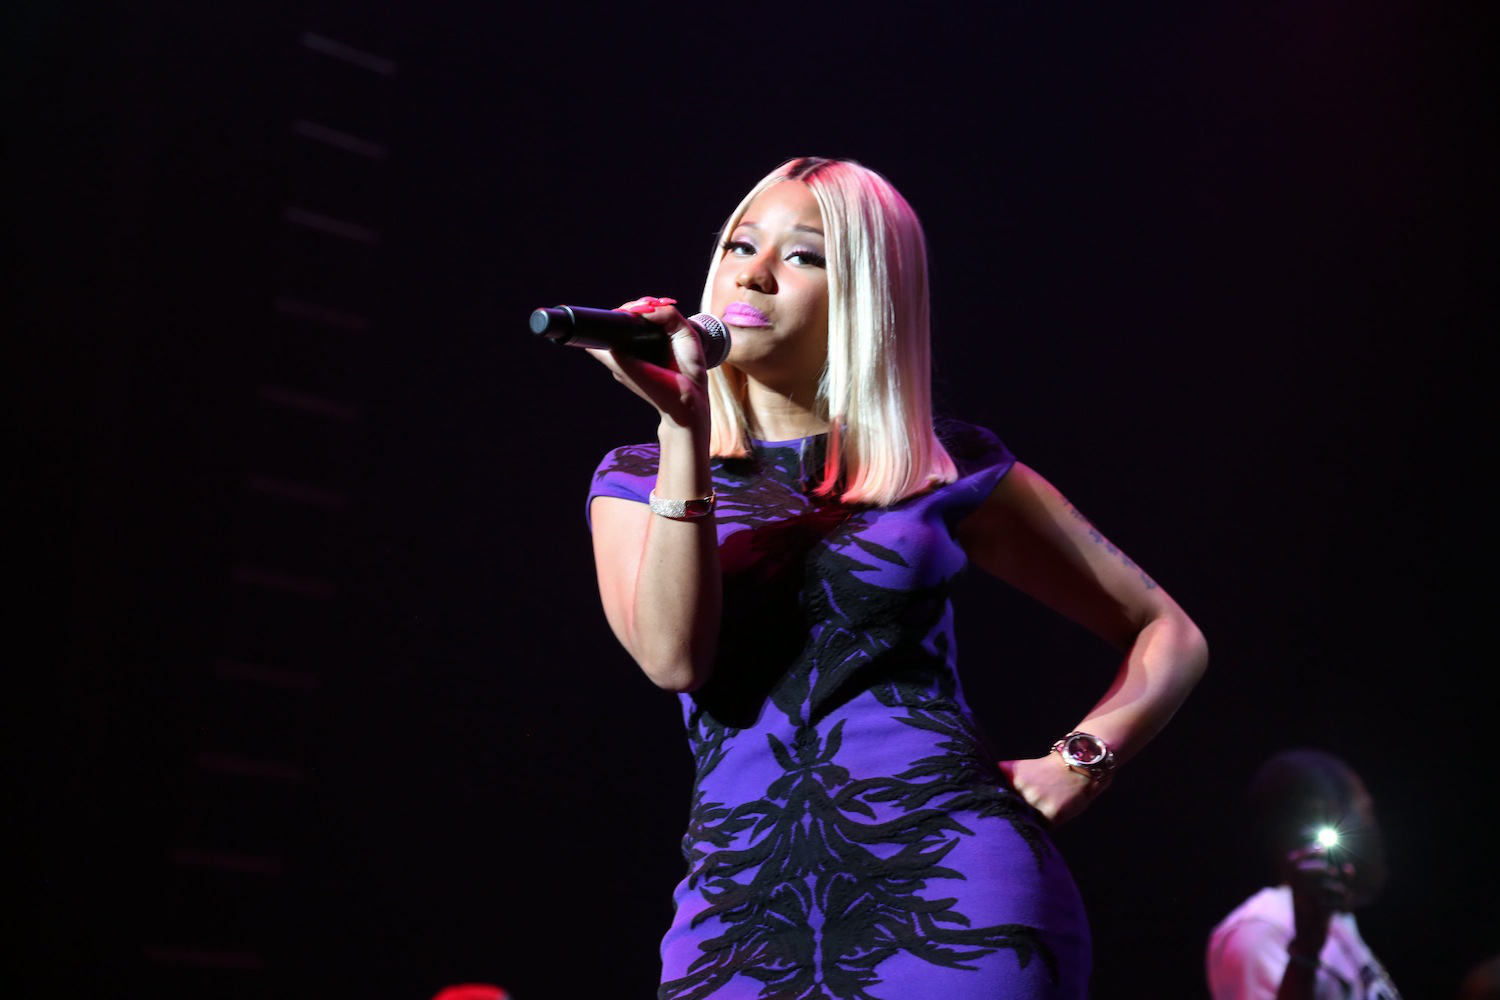 Nicki Minaj on Aug. 30, 2013, in New York City.